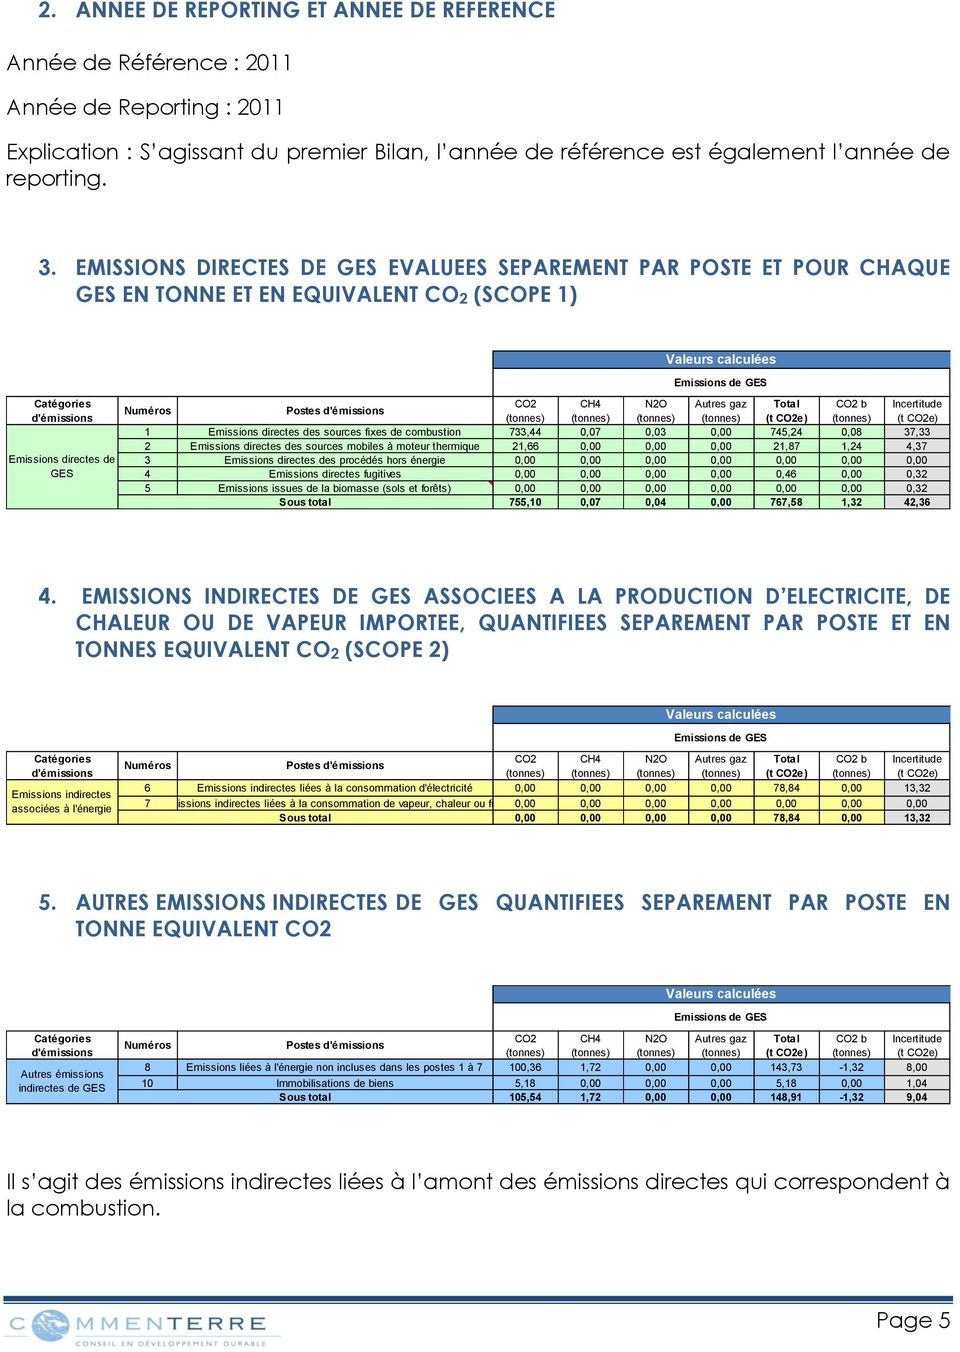 CH4 N2O Autres gaz Total CO2 b Incertitude (tonnes) (tonnes) (tonnes) (tonnes) (t CO2e) (tonnes) (t CO2e) 1 directes des sources fixes de combustion 733,44 0,07 0,03 0,00 745,24 0,08 37,33 2 directes